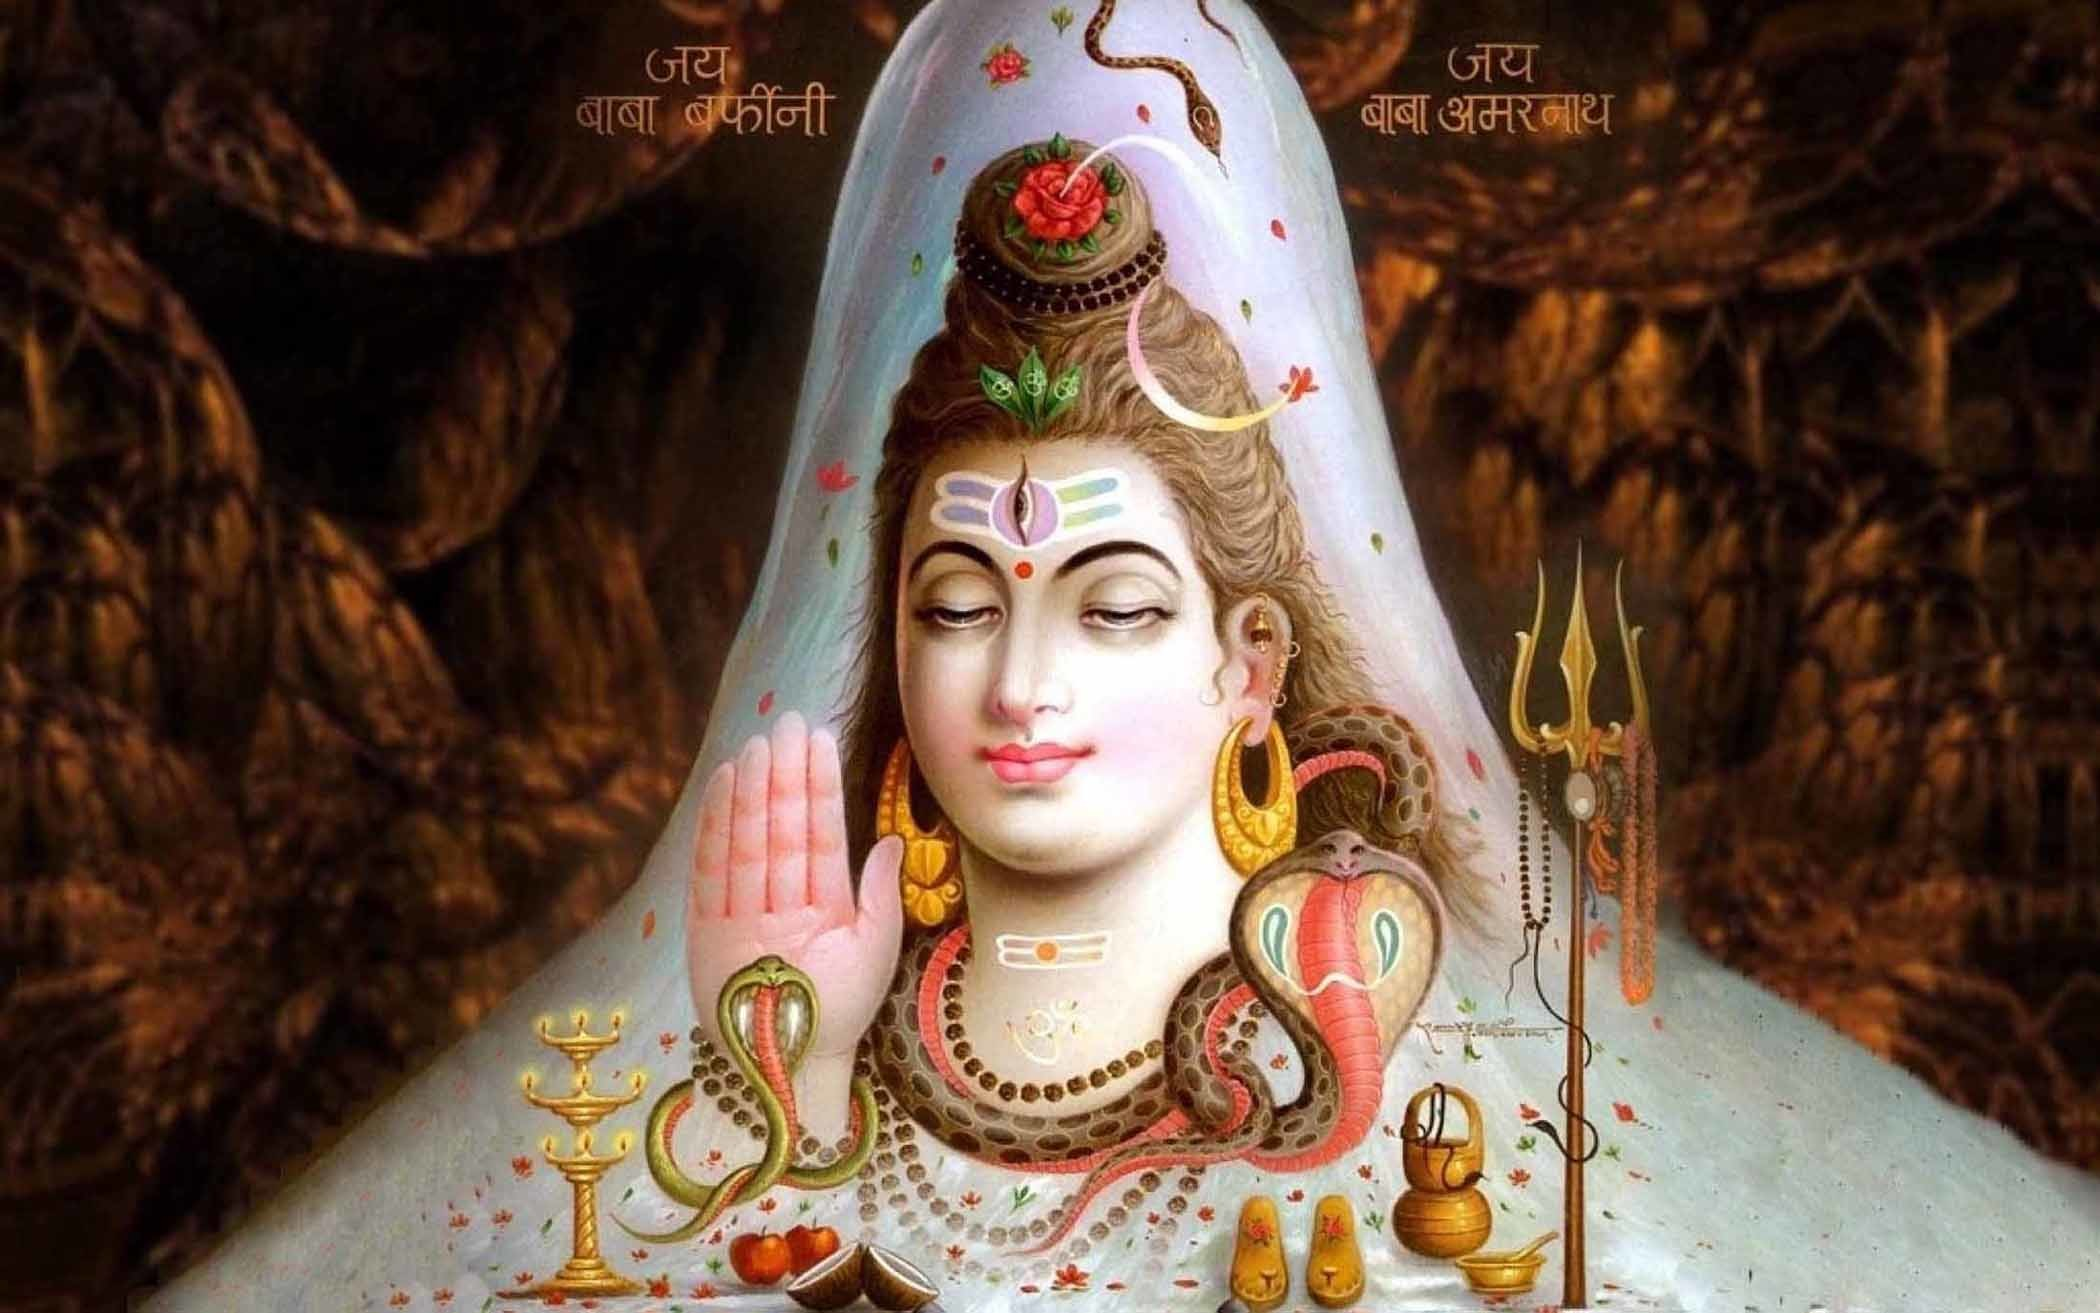 Lord Shiva in pc high definition wallpapers